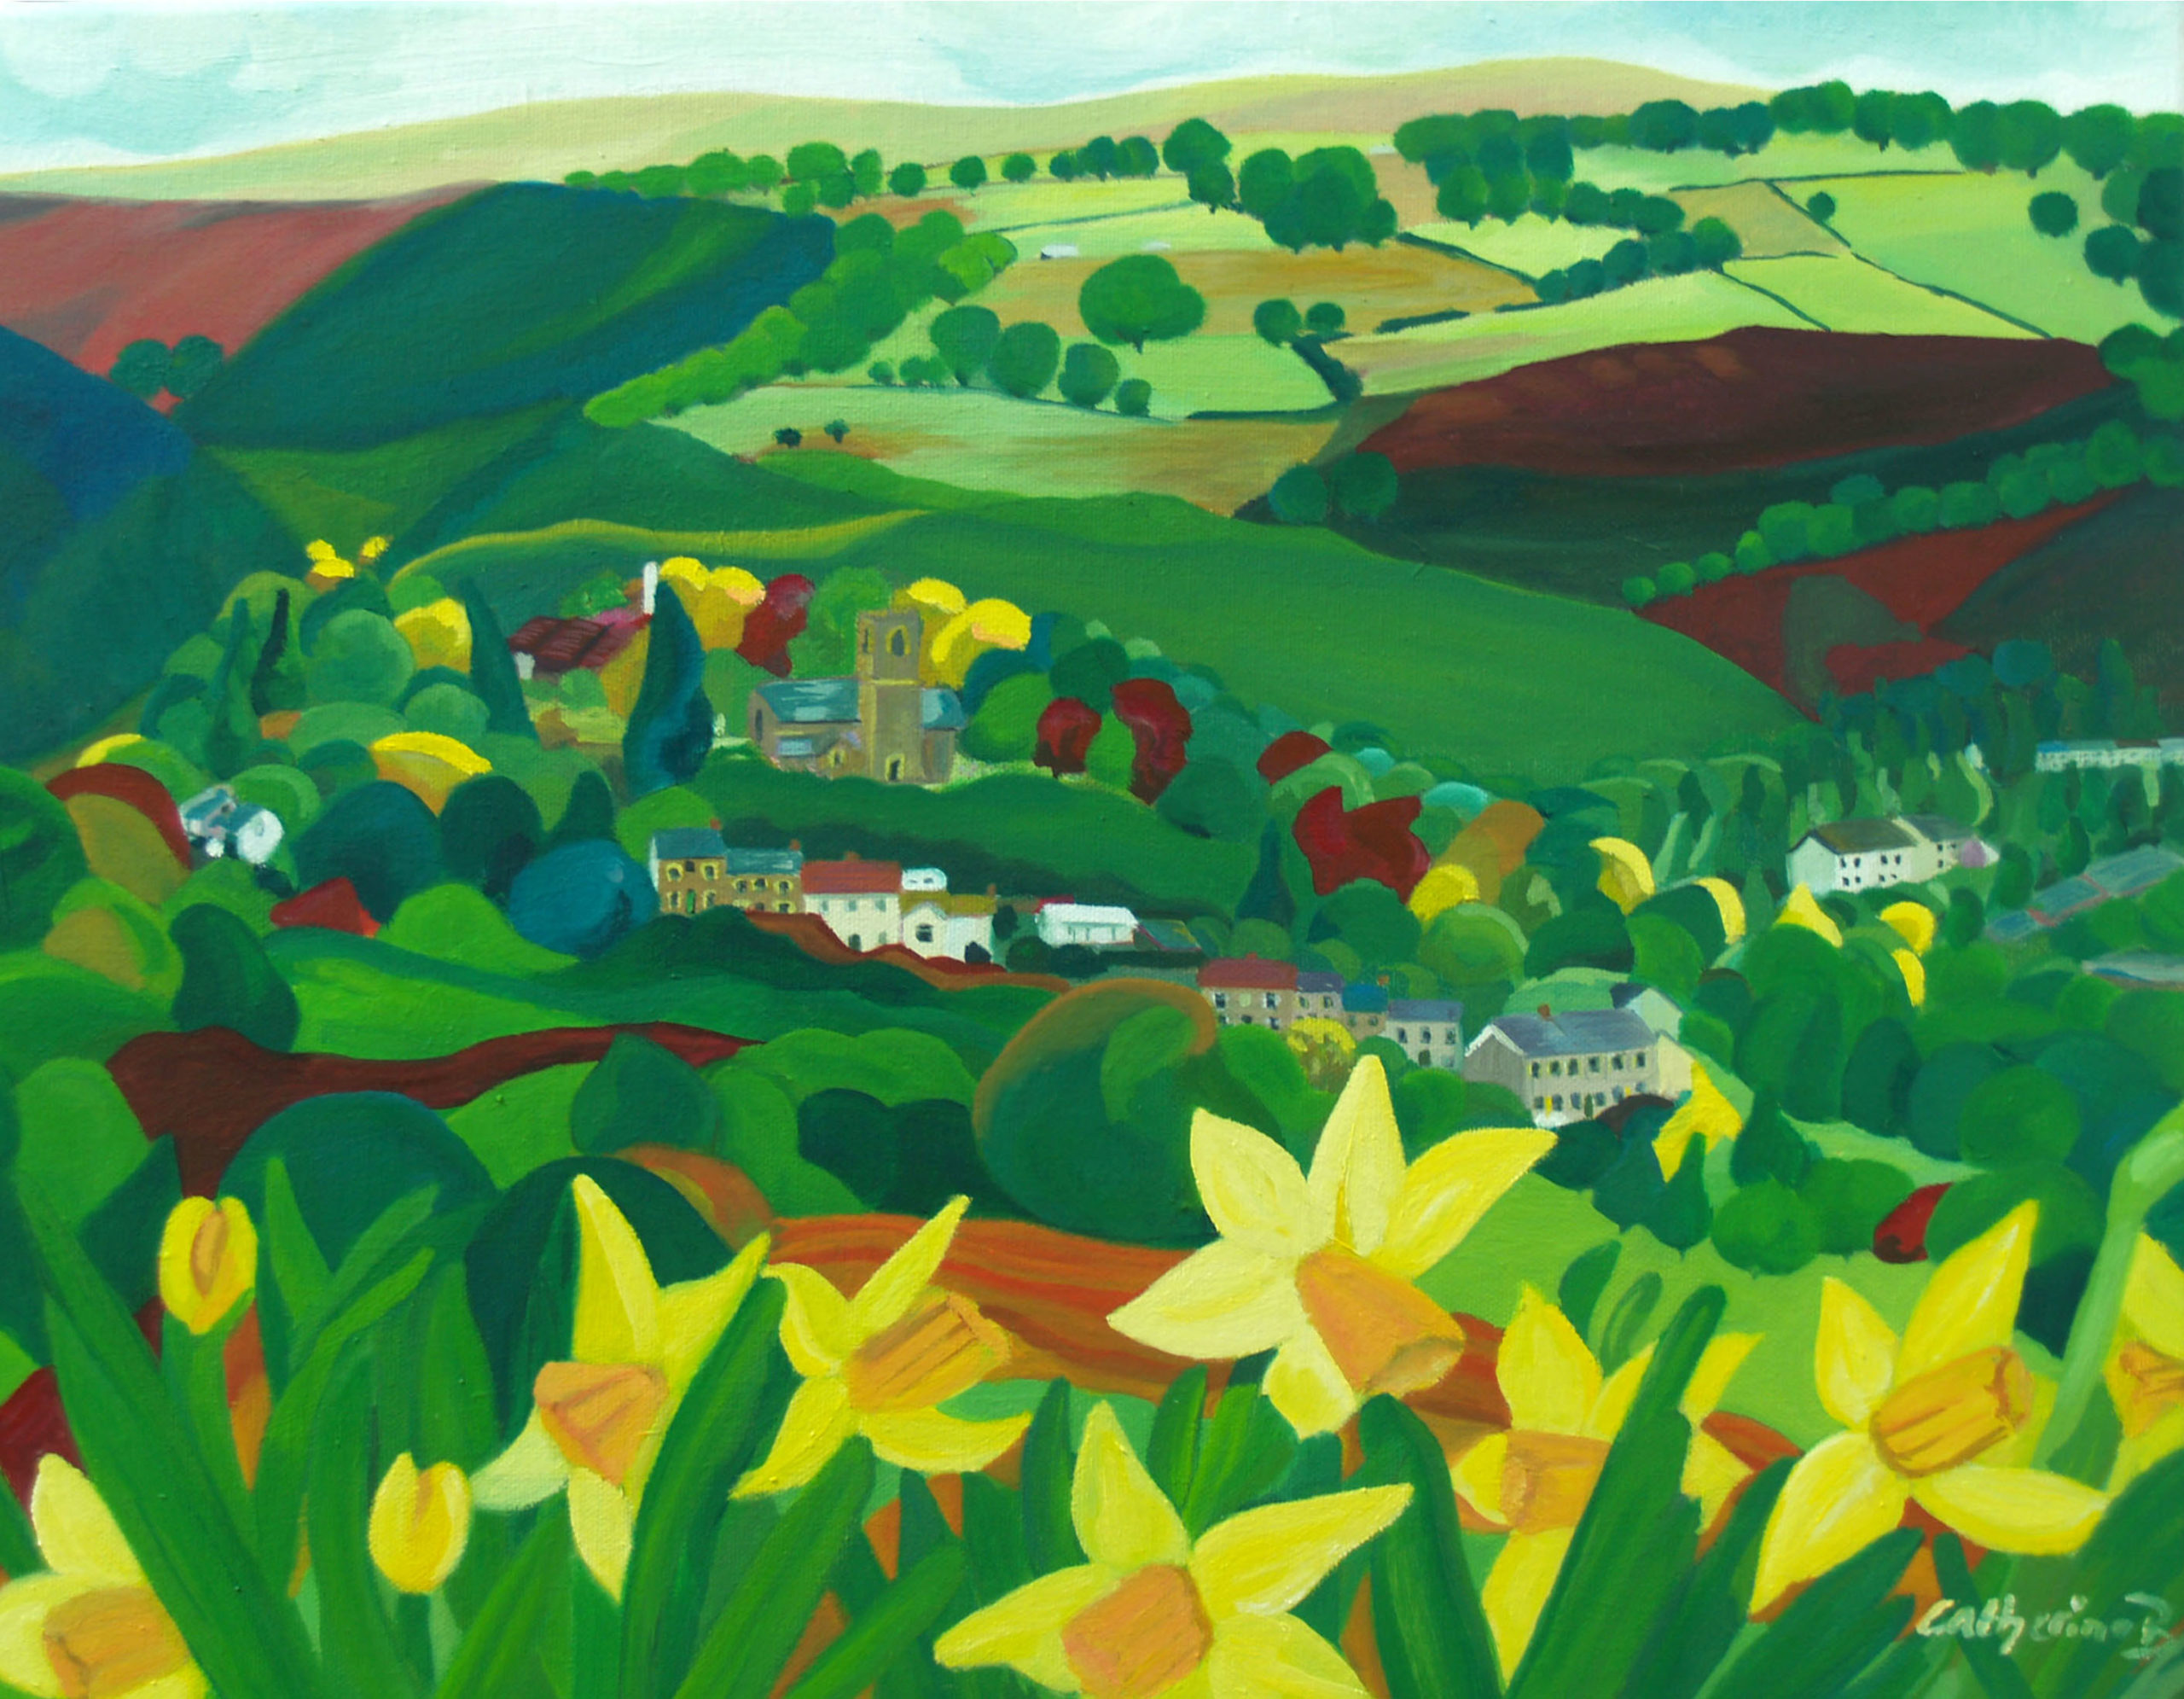 rolling hills and daffodils with a village tucked in the valley